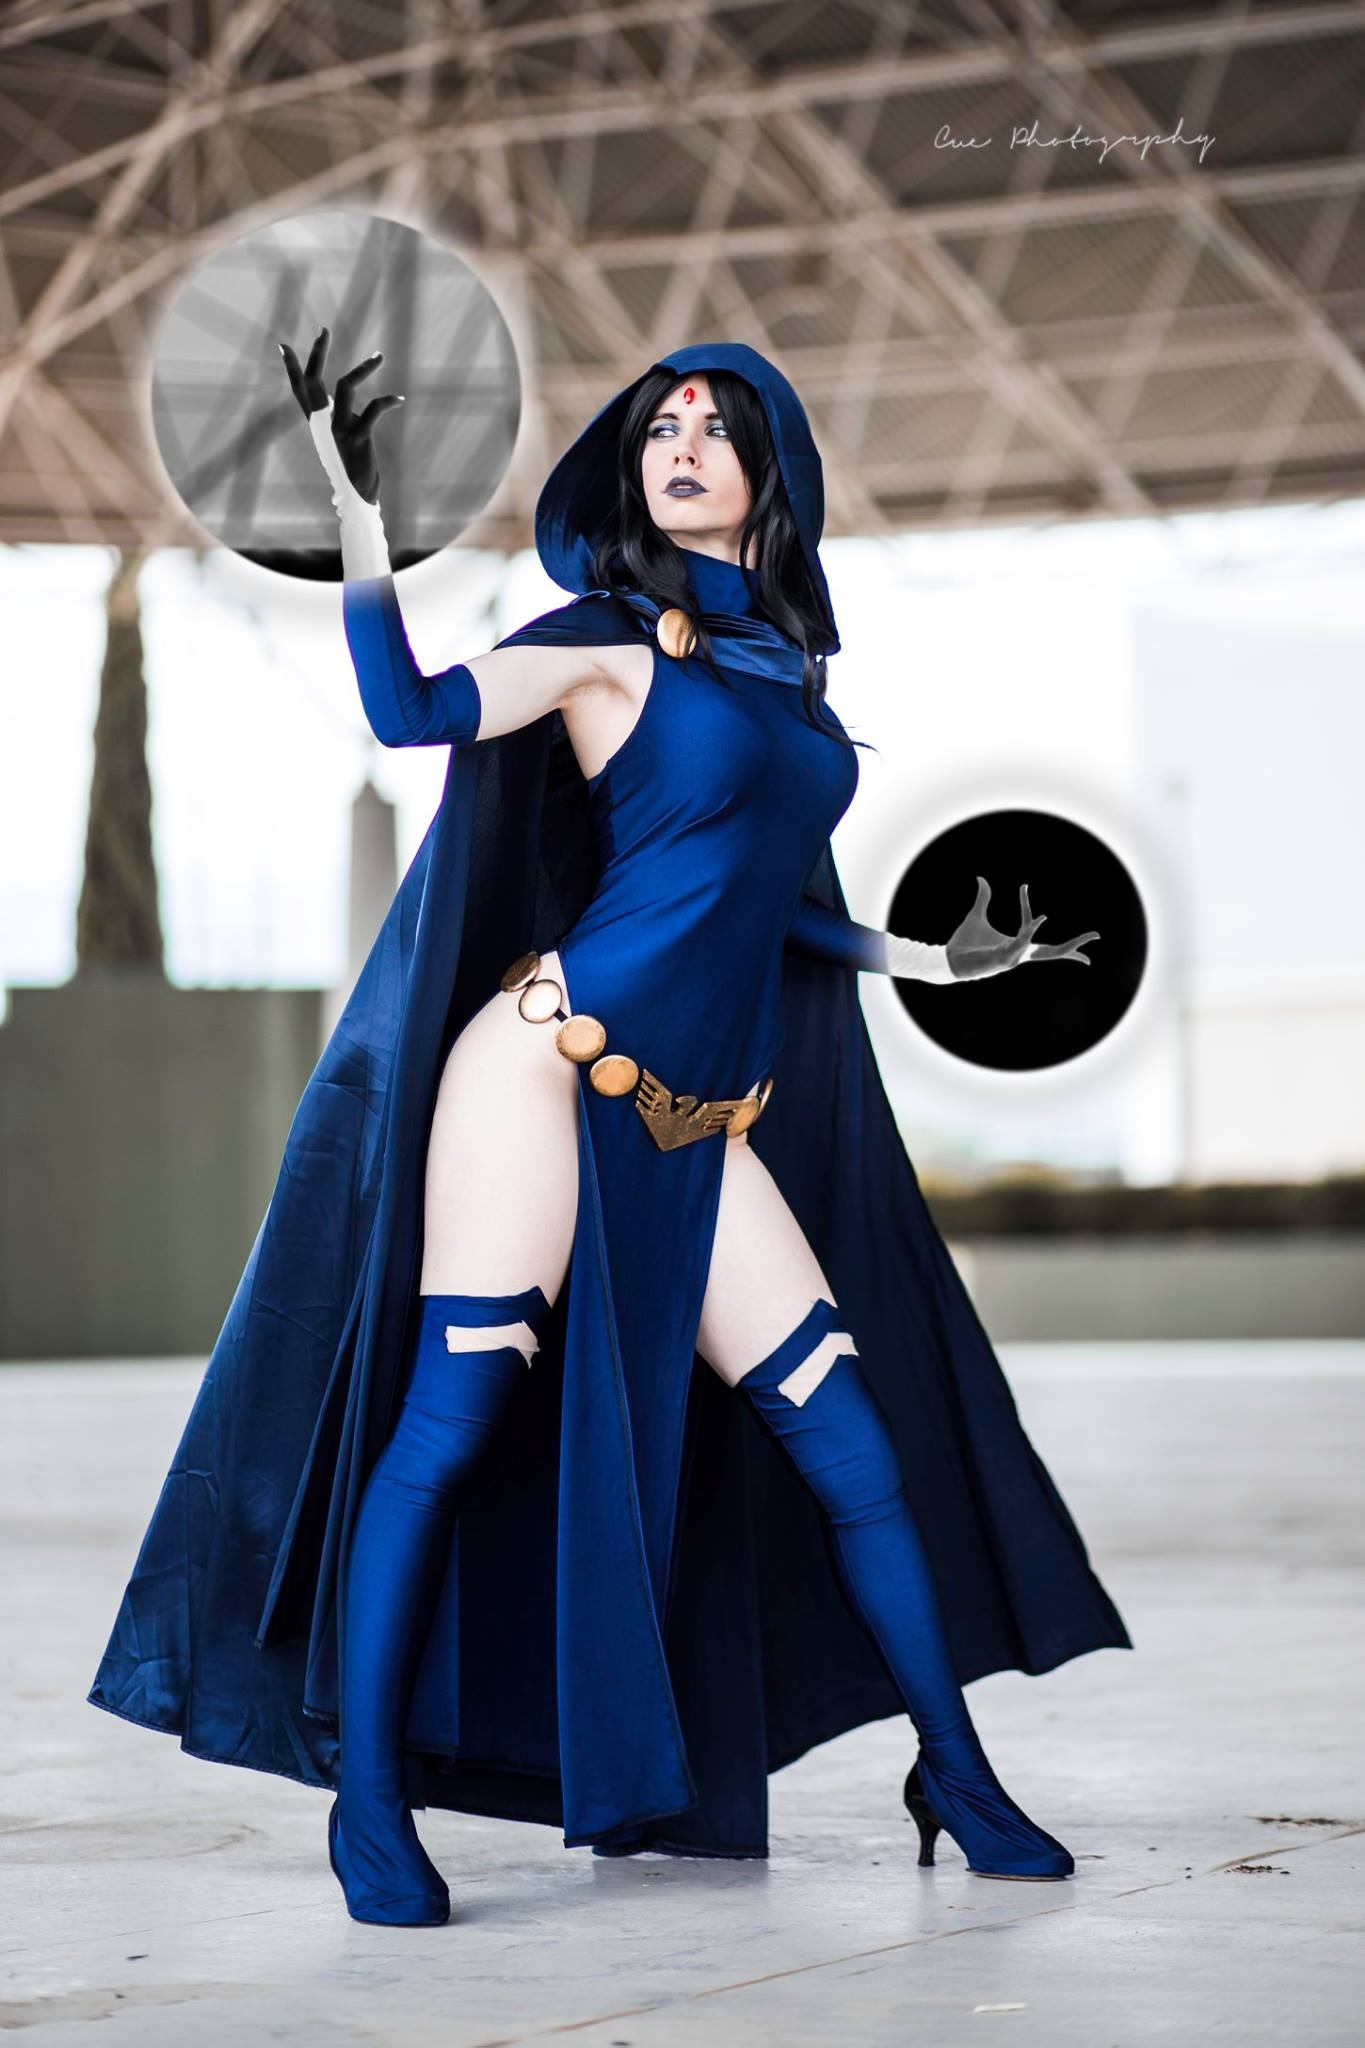 Stunning Raven cosplay from Fiore Sofen